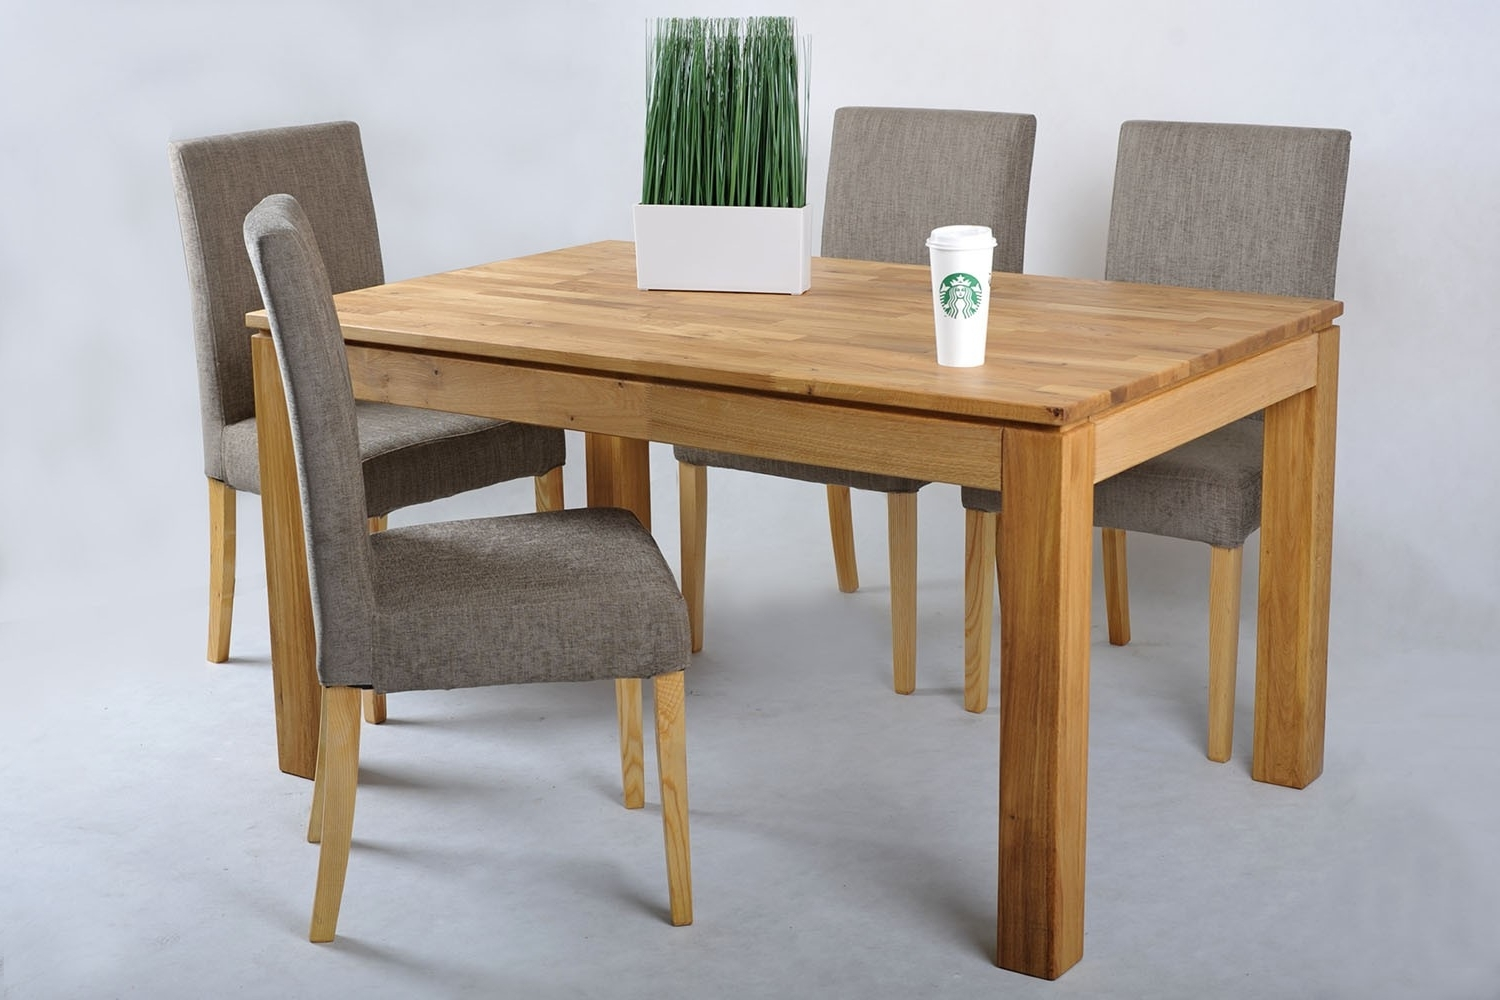 Oak Fabric Dining Chairs Regarding 2017 Oak Extending Dining Table And Fabric Chairs Set (View 19 of 25)